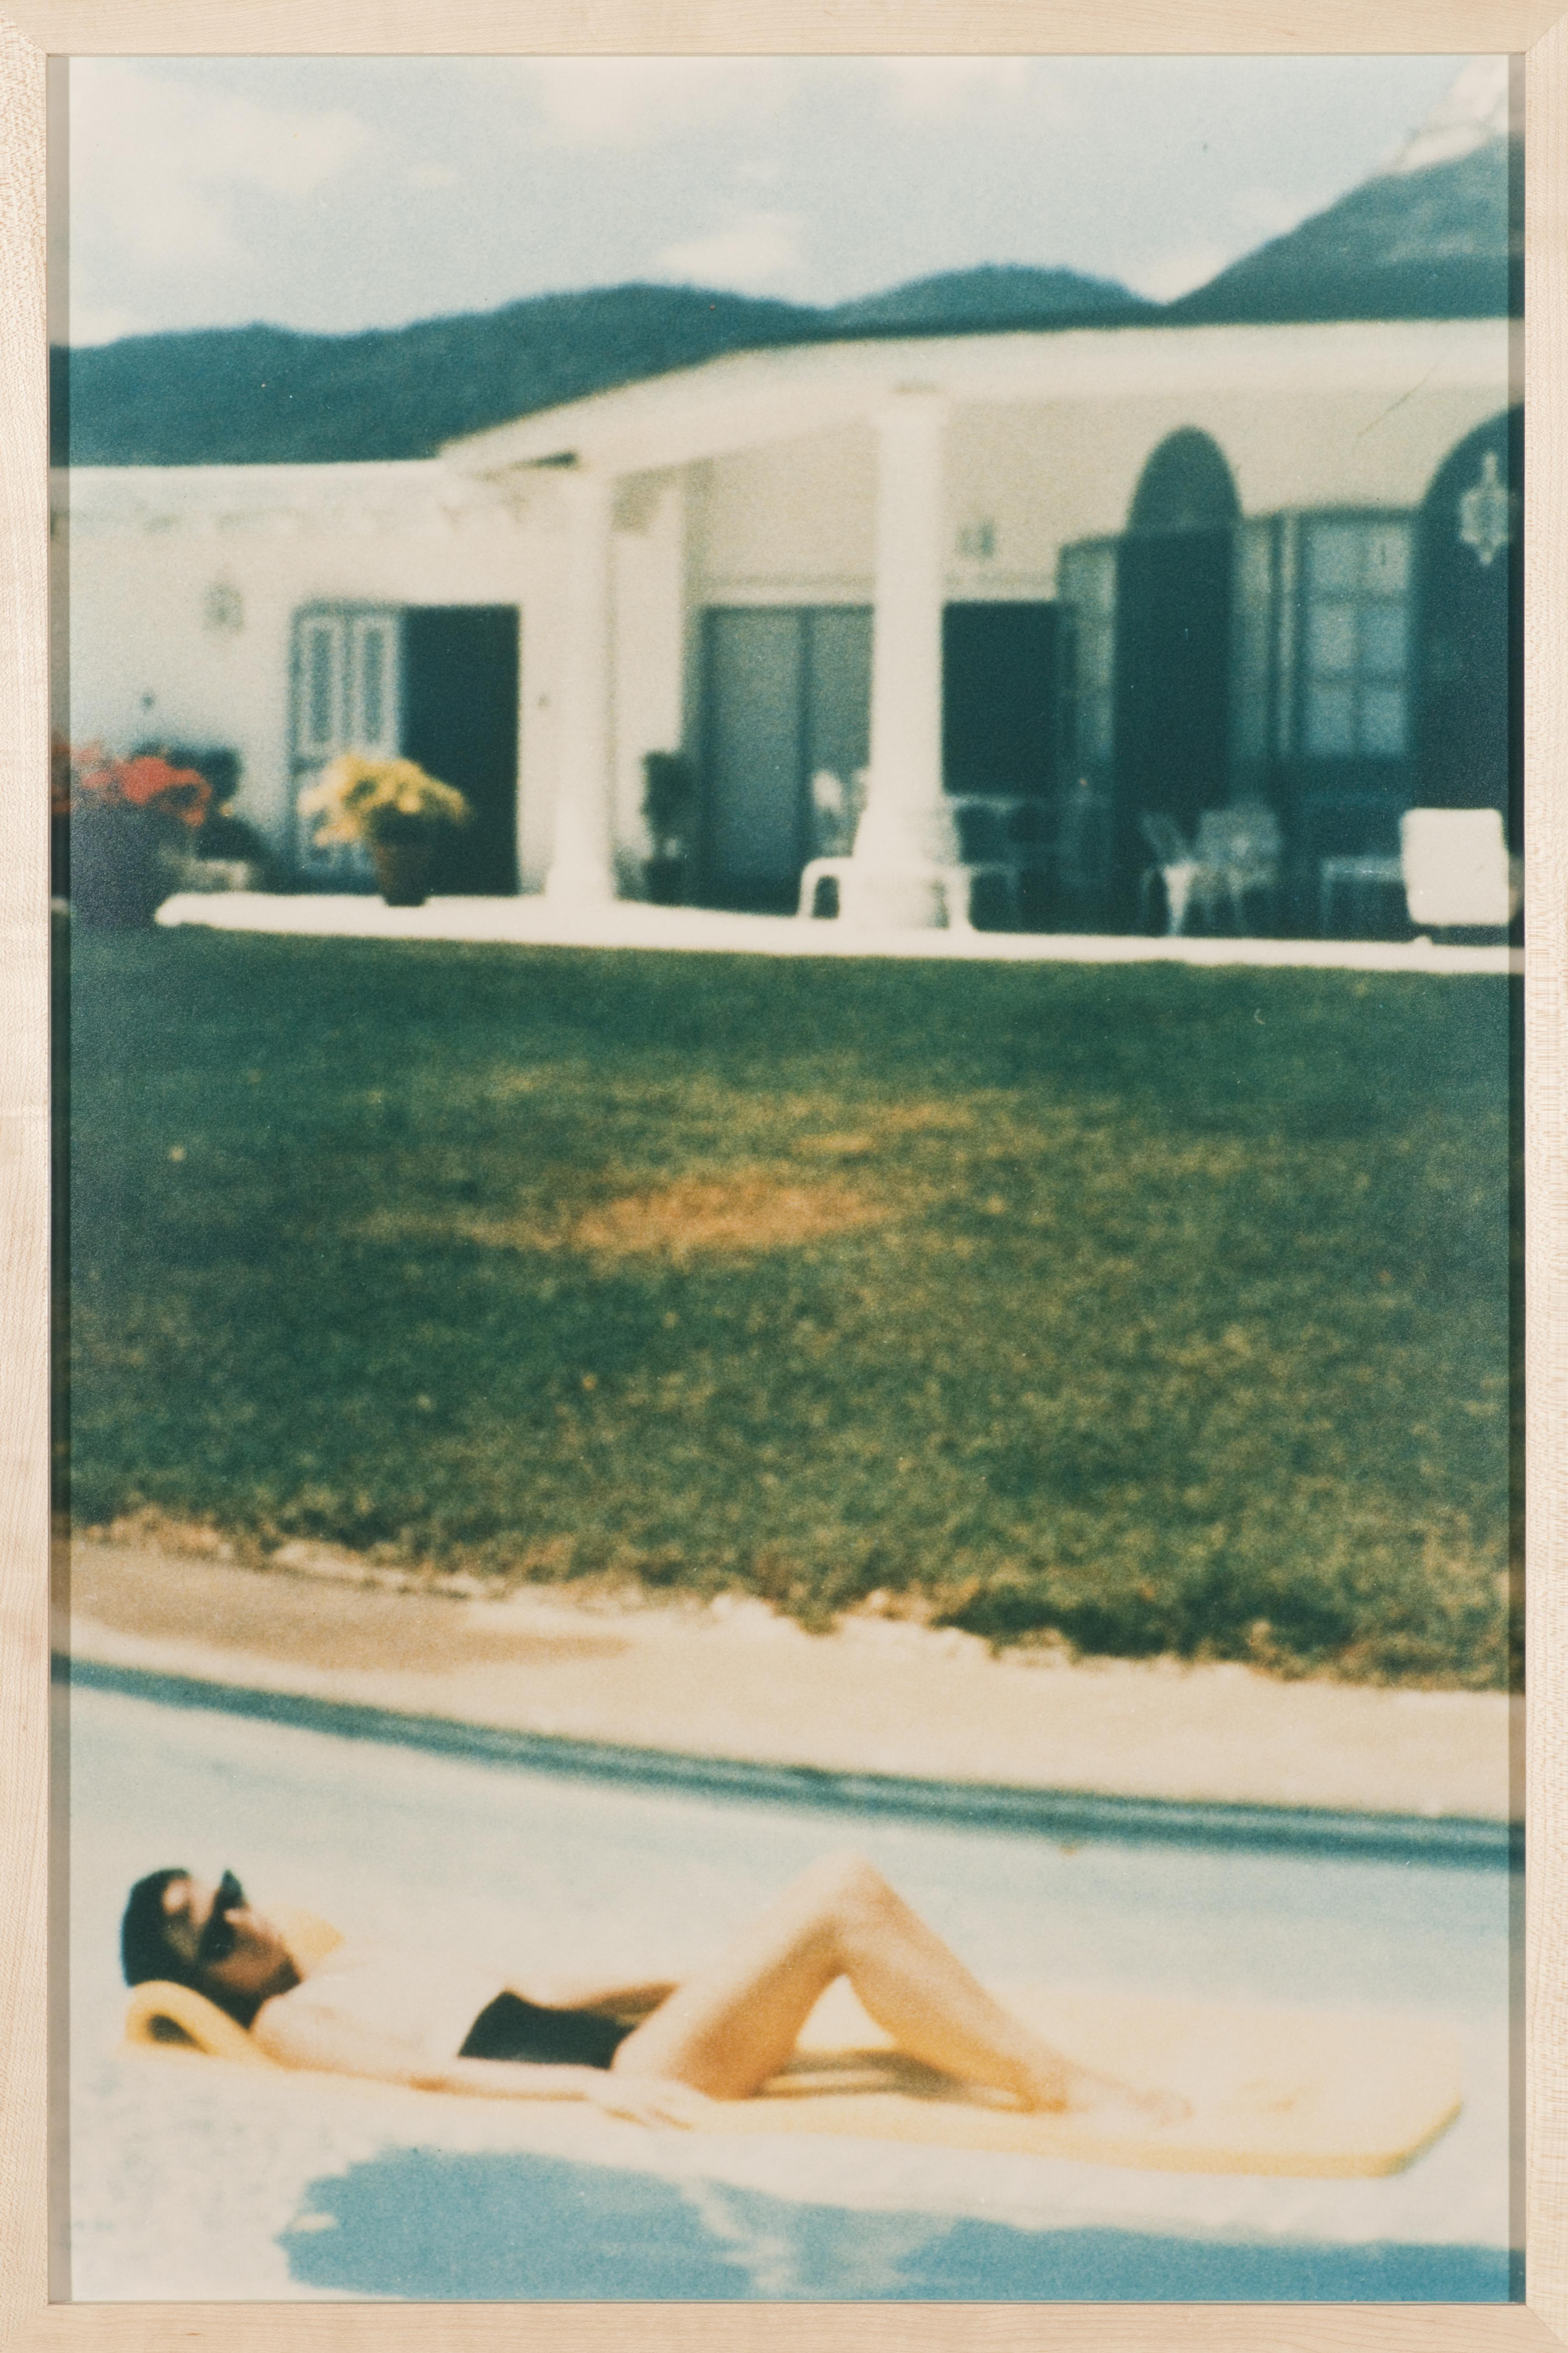 In what appears to be an aged photograph, a dark-haired person reclines on a lounge pool float in front of a large yard and house.